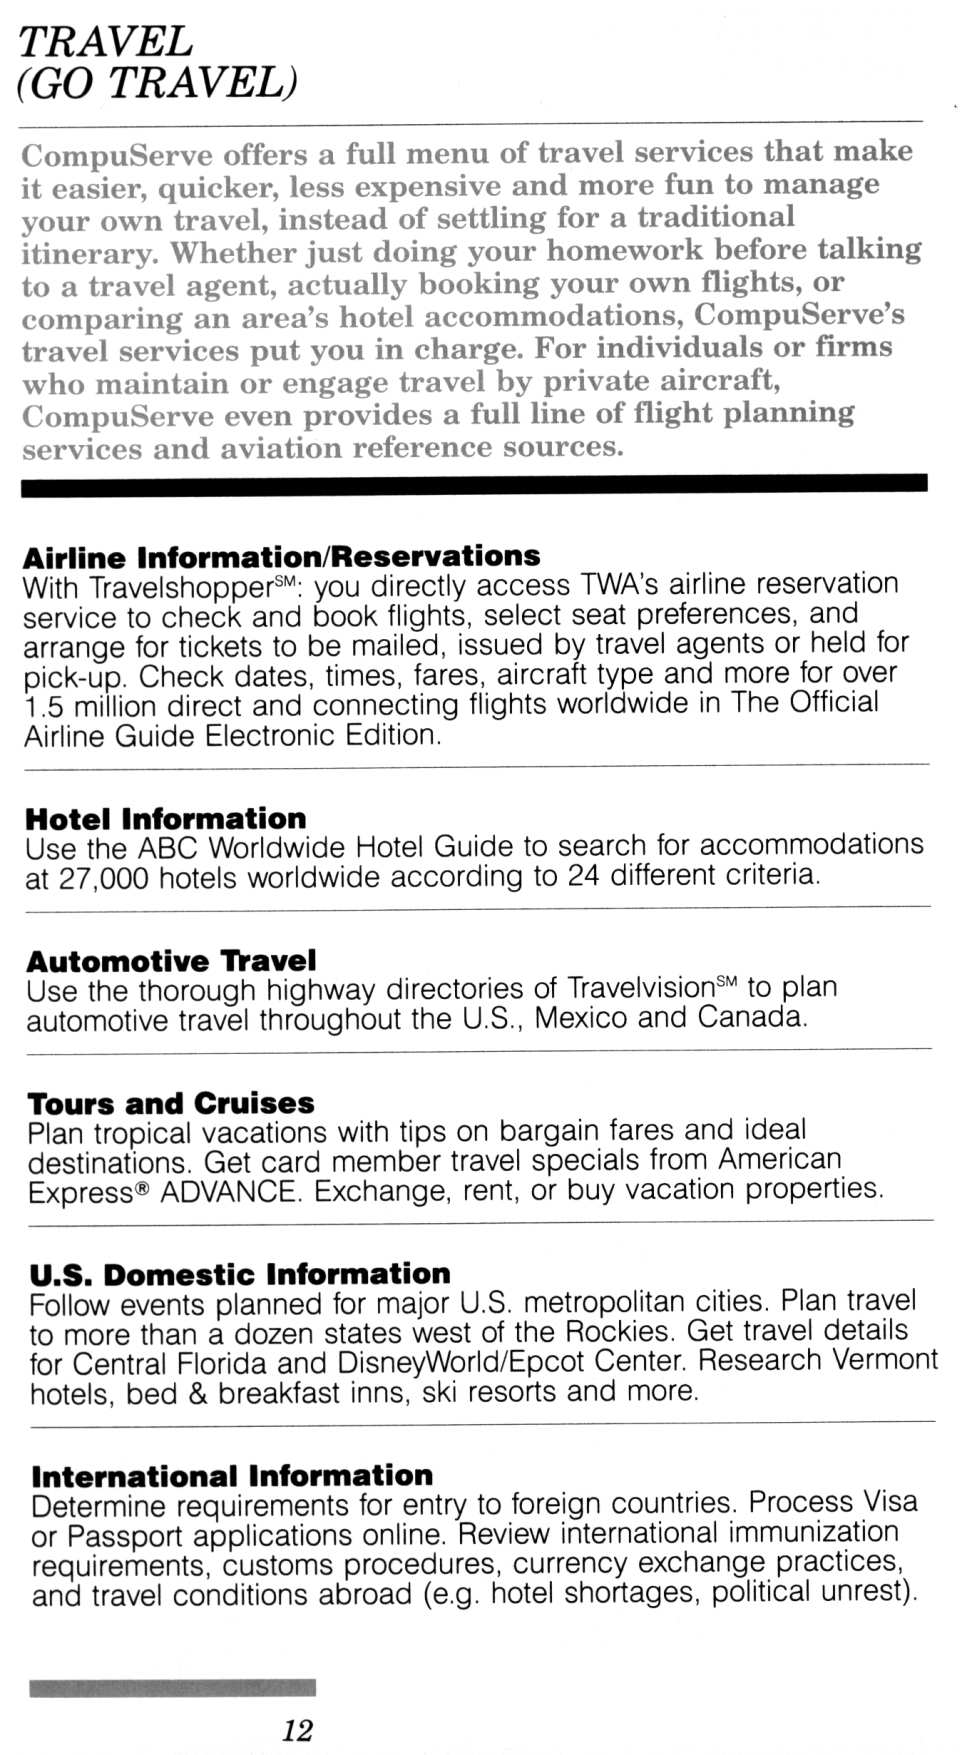 [CompuServe IntroPak page 12/44  Travel (GO TRAVEL)]